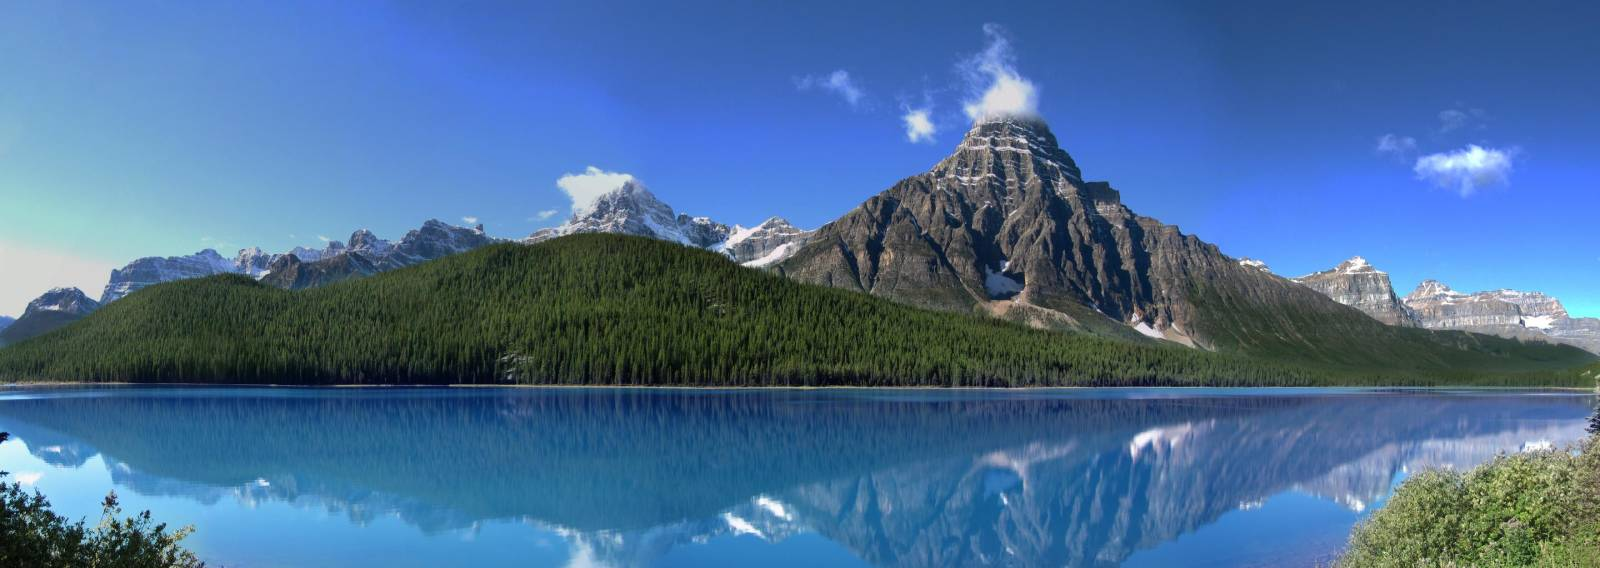 a lake with a mountain in the background